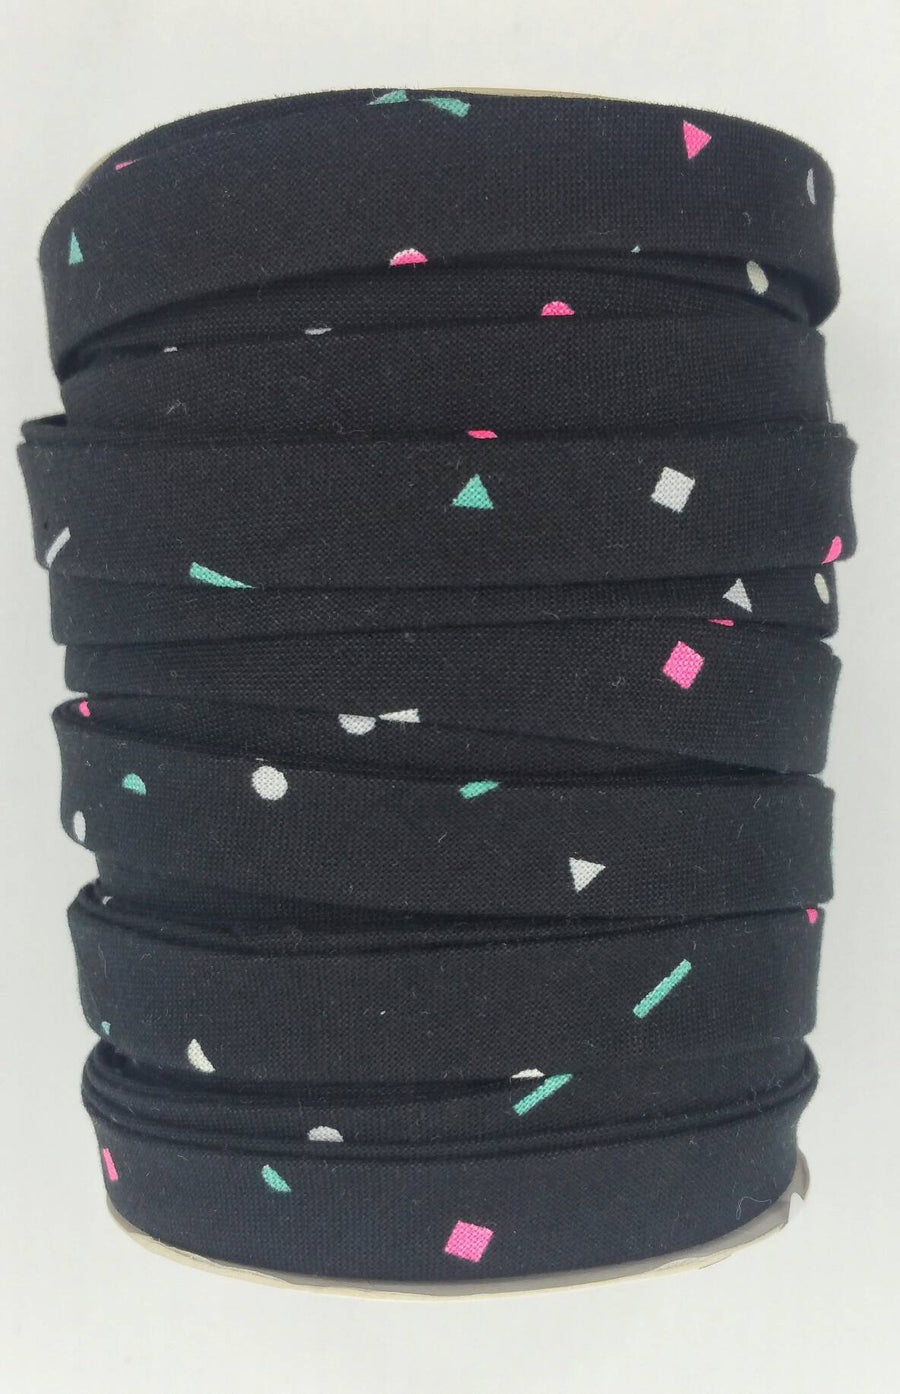 Black Bias Tape